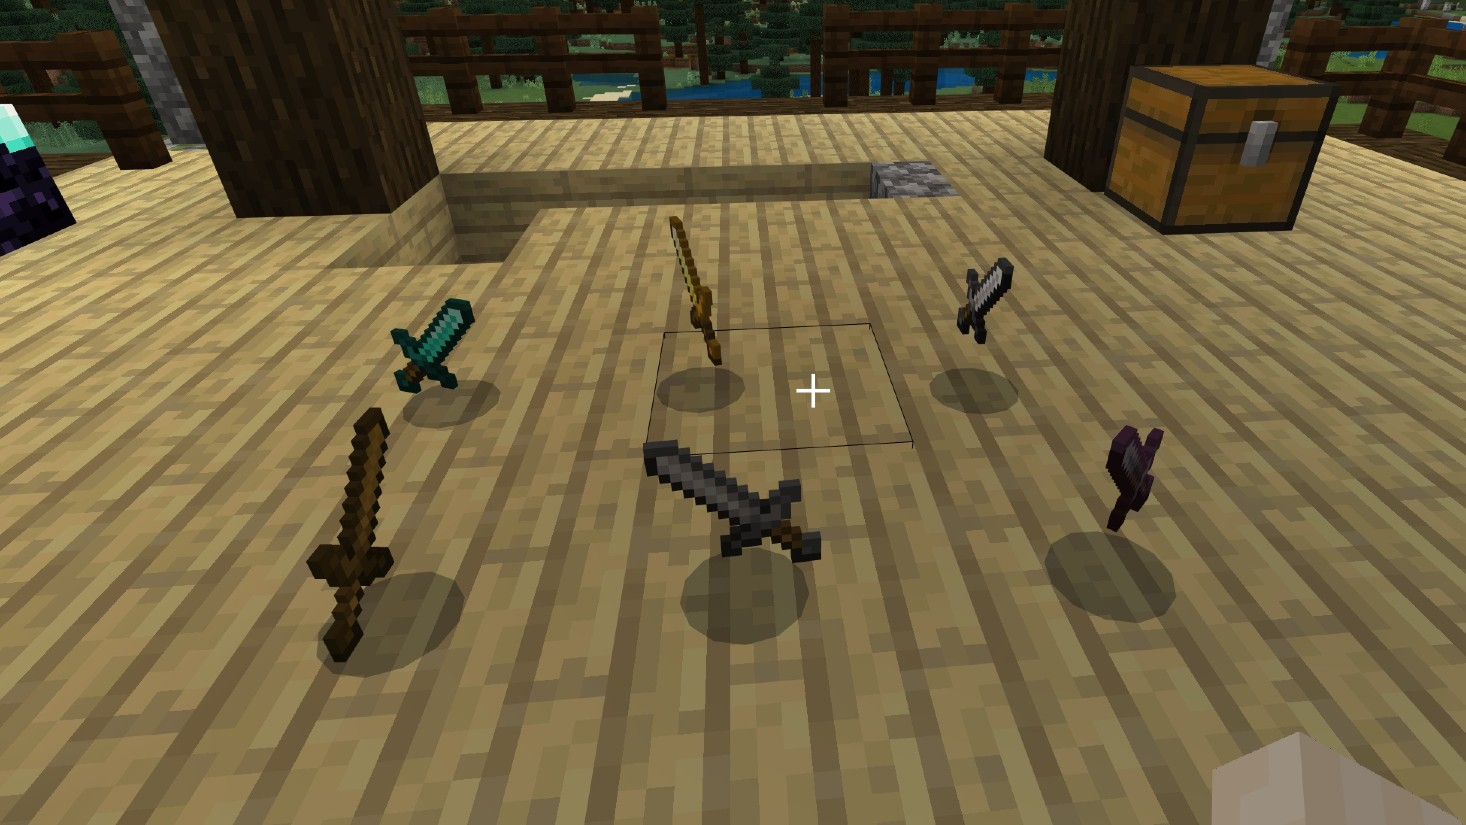 Survive Minecraft's biggest dangers with this swords guide